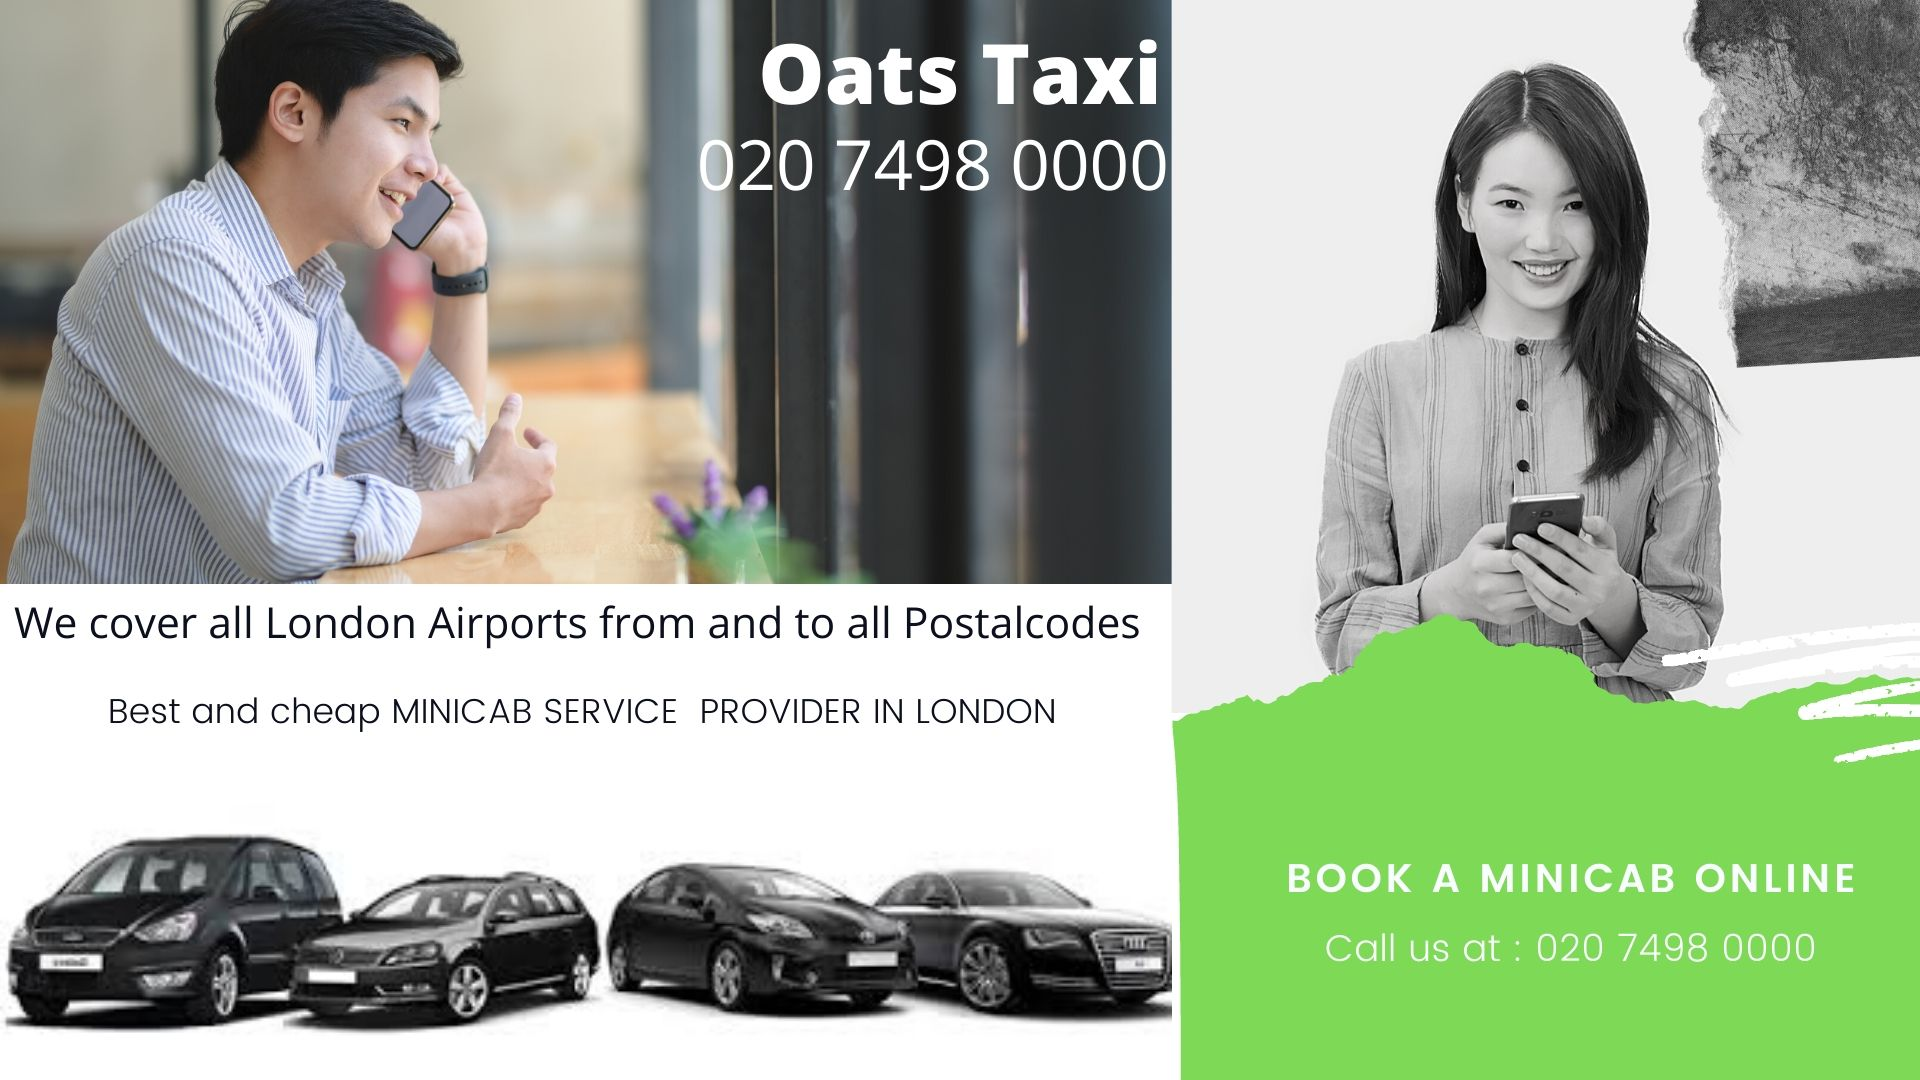 Nearest Taxi Office in Barnes | Nearest Taxi Office in Gatwick Airport | Call now : 02074980000